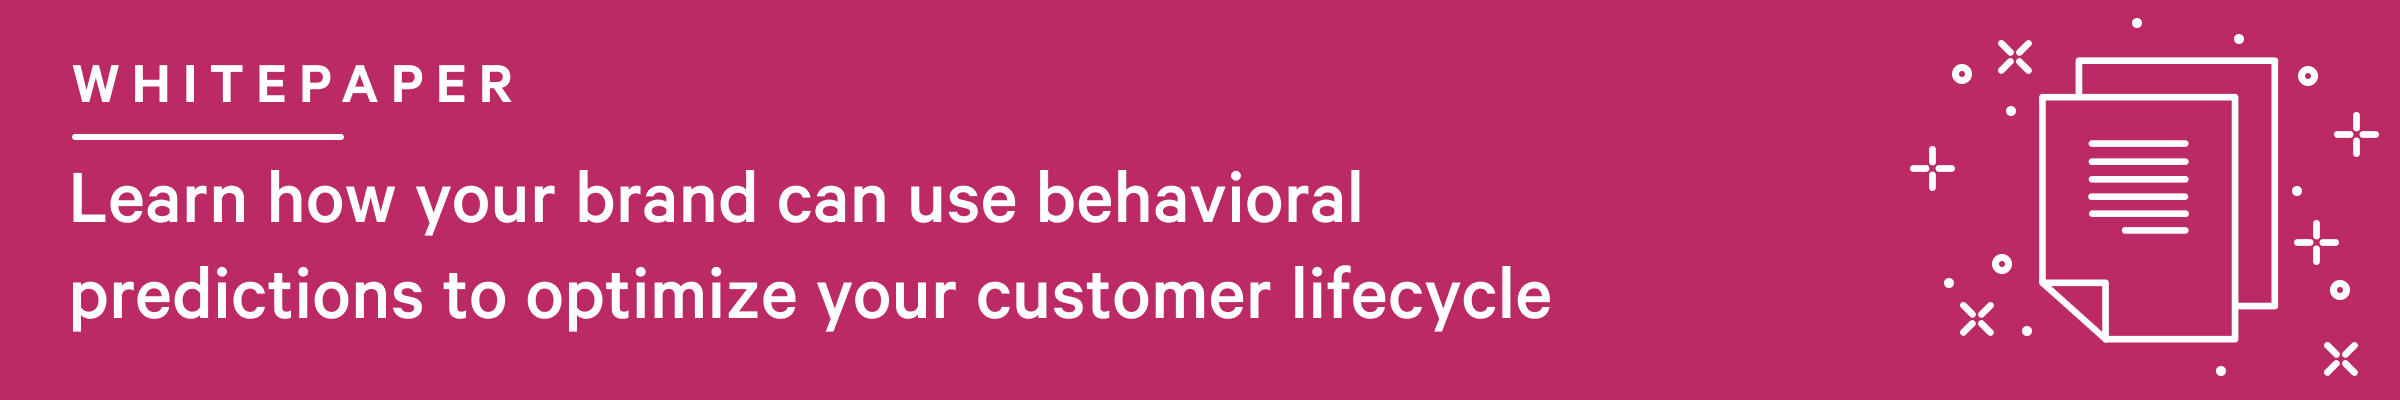 Learn how your brand can use behavioral predictions to optimize your customer lifecycle